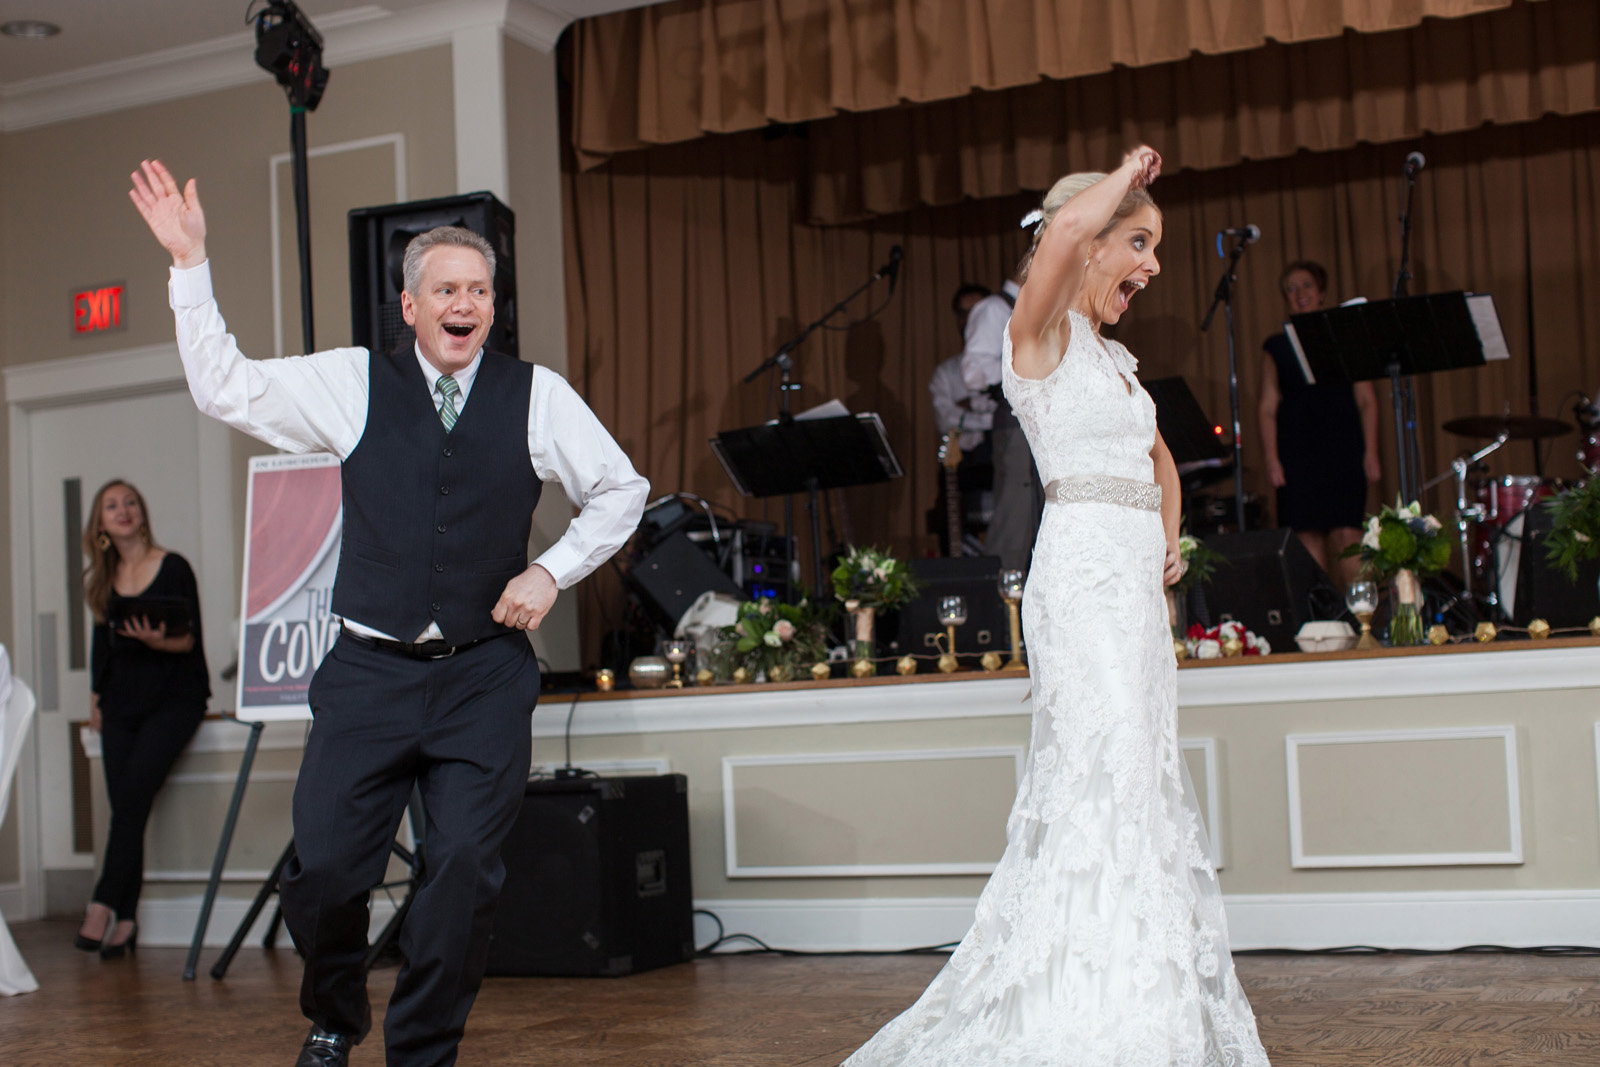 Being funny during a fun father daughter wedding dance